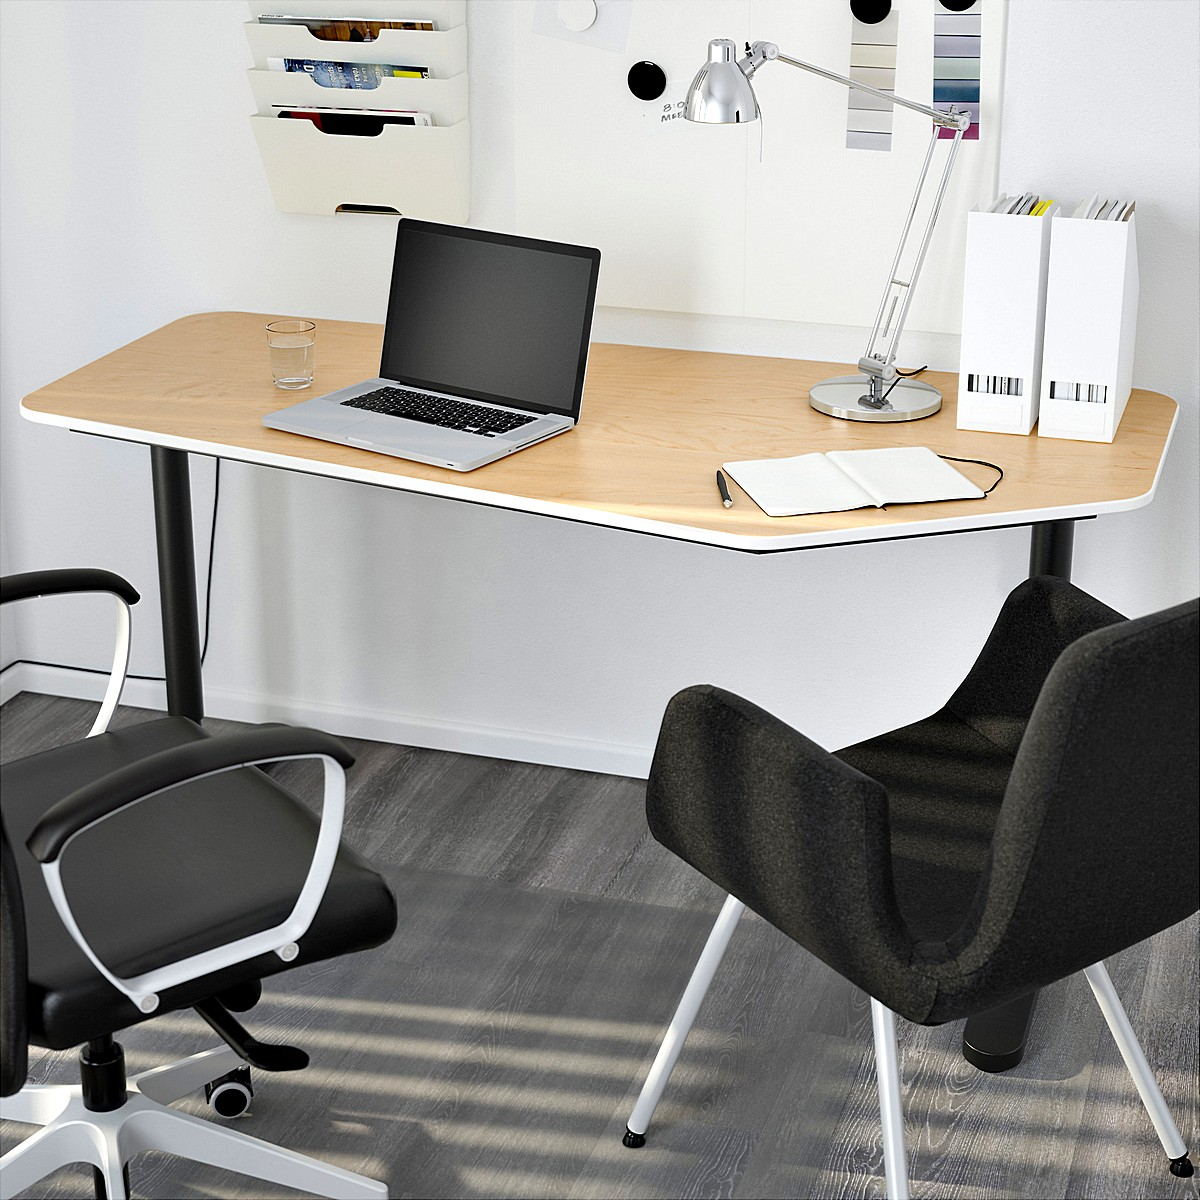 ikea-bekant-5-sided-desk-for-office